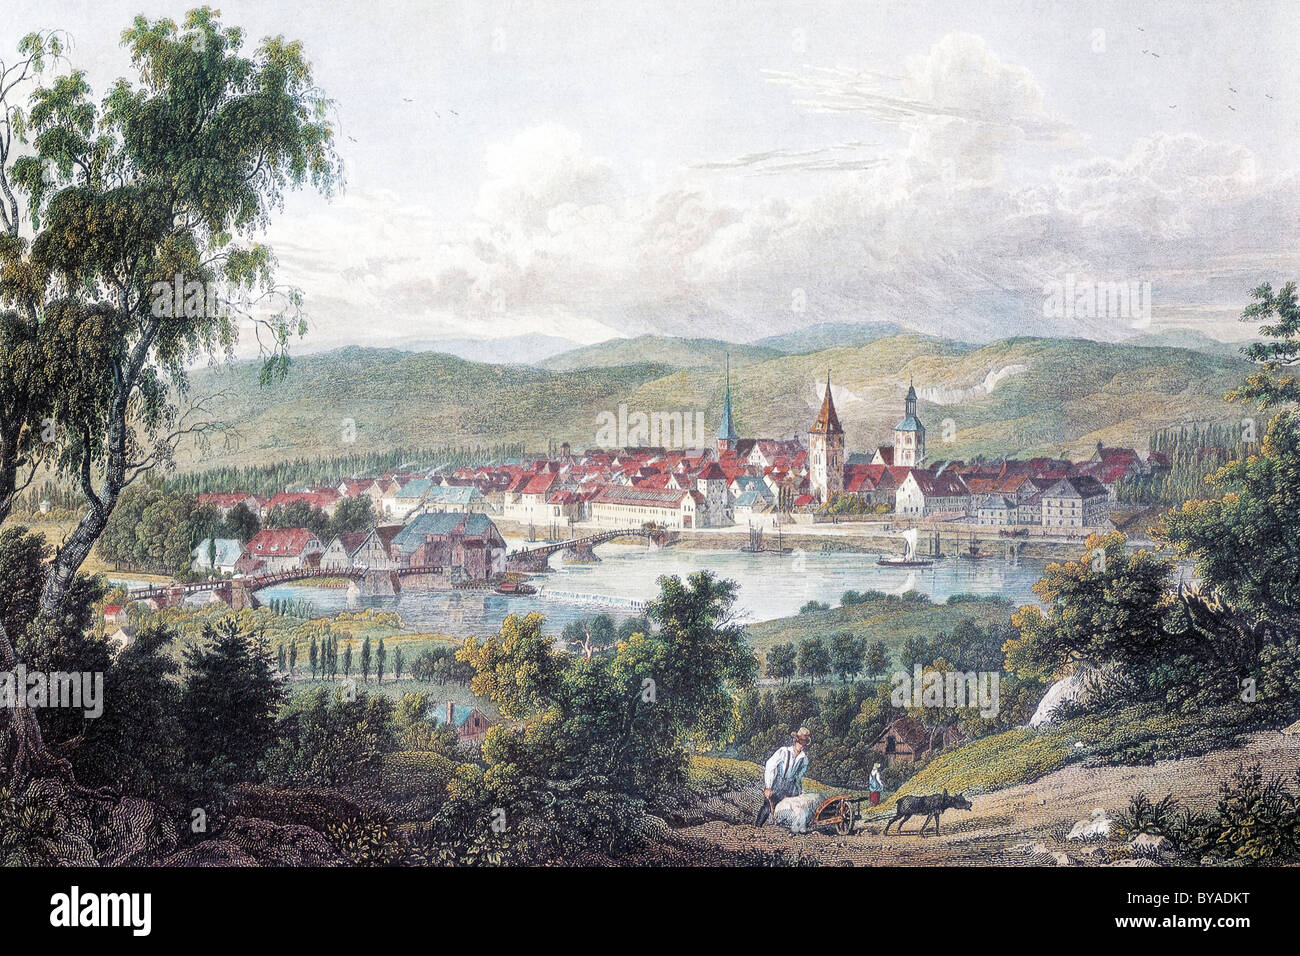 View of Hamelin, about 1830, historic cityscape, steel engraving created in the 19th century, Lower Saxony, Germany, - Stock Image